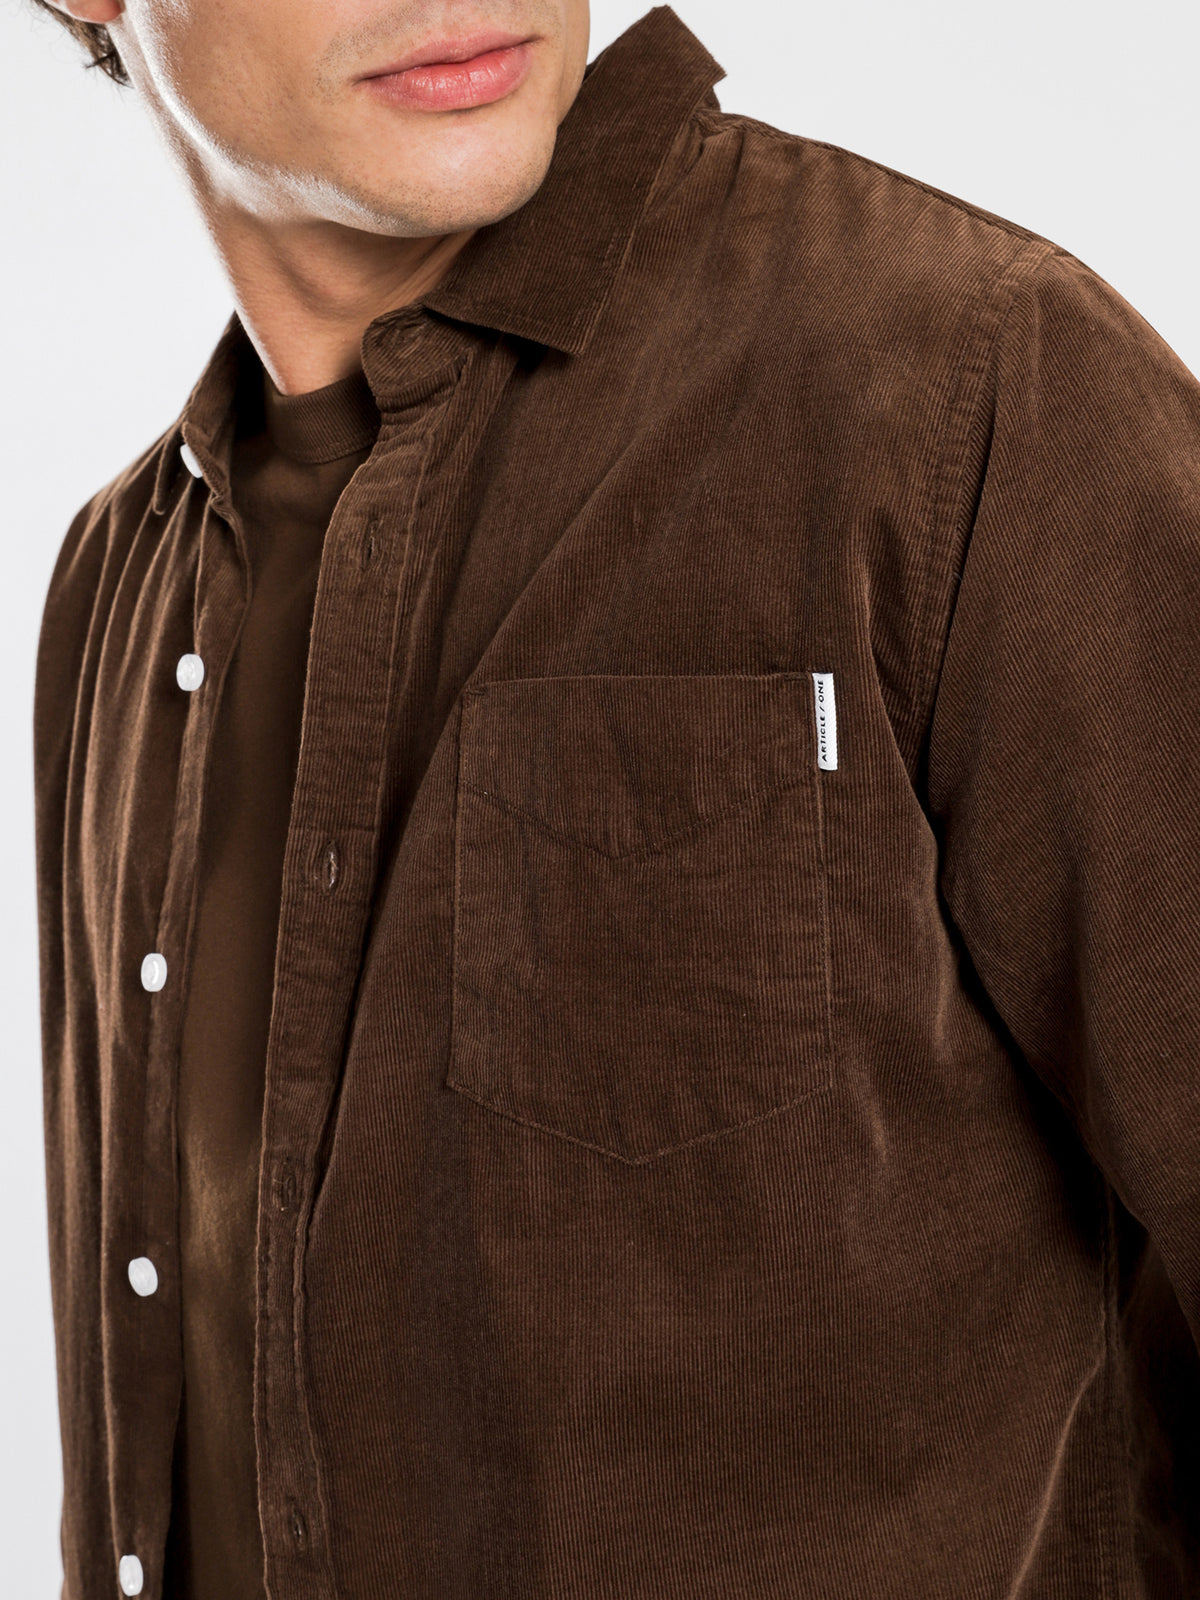 Axel Cord Long Sleeve Shirt in Mahogany